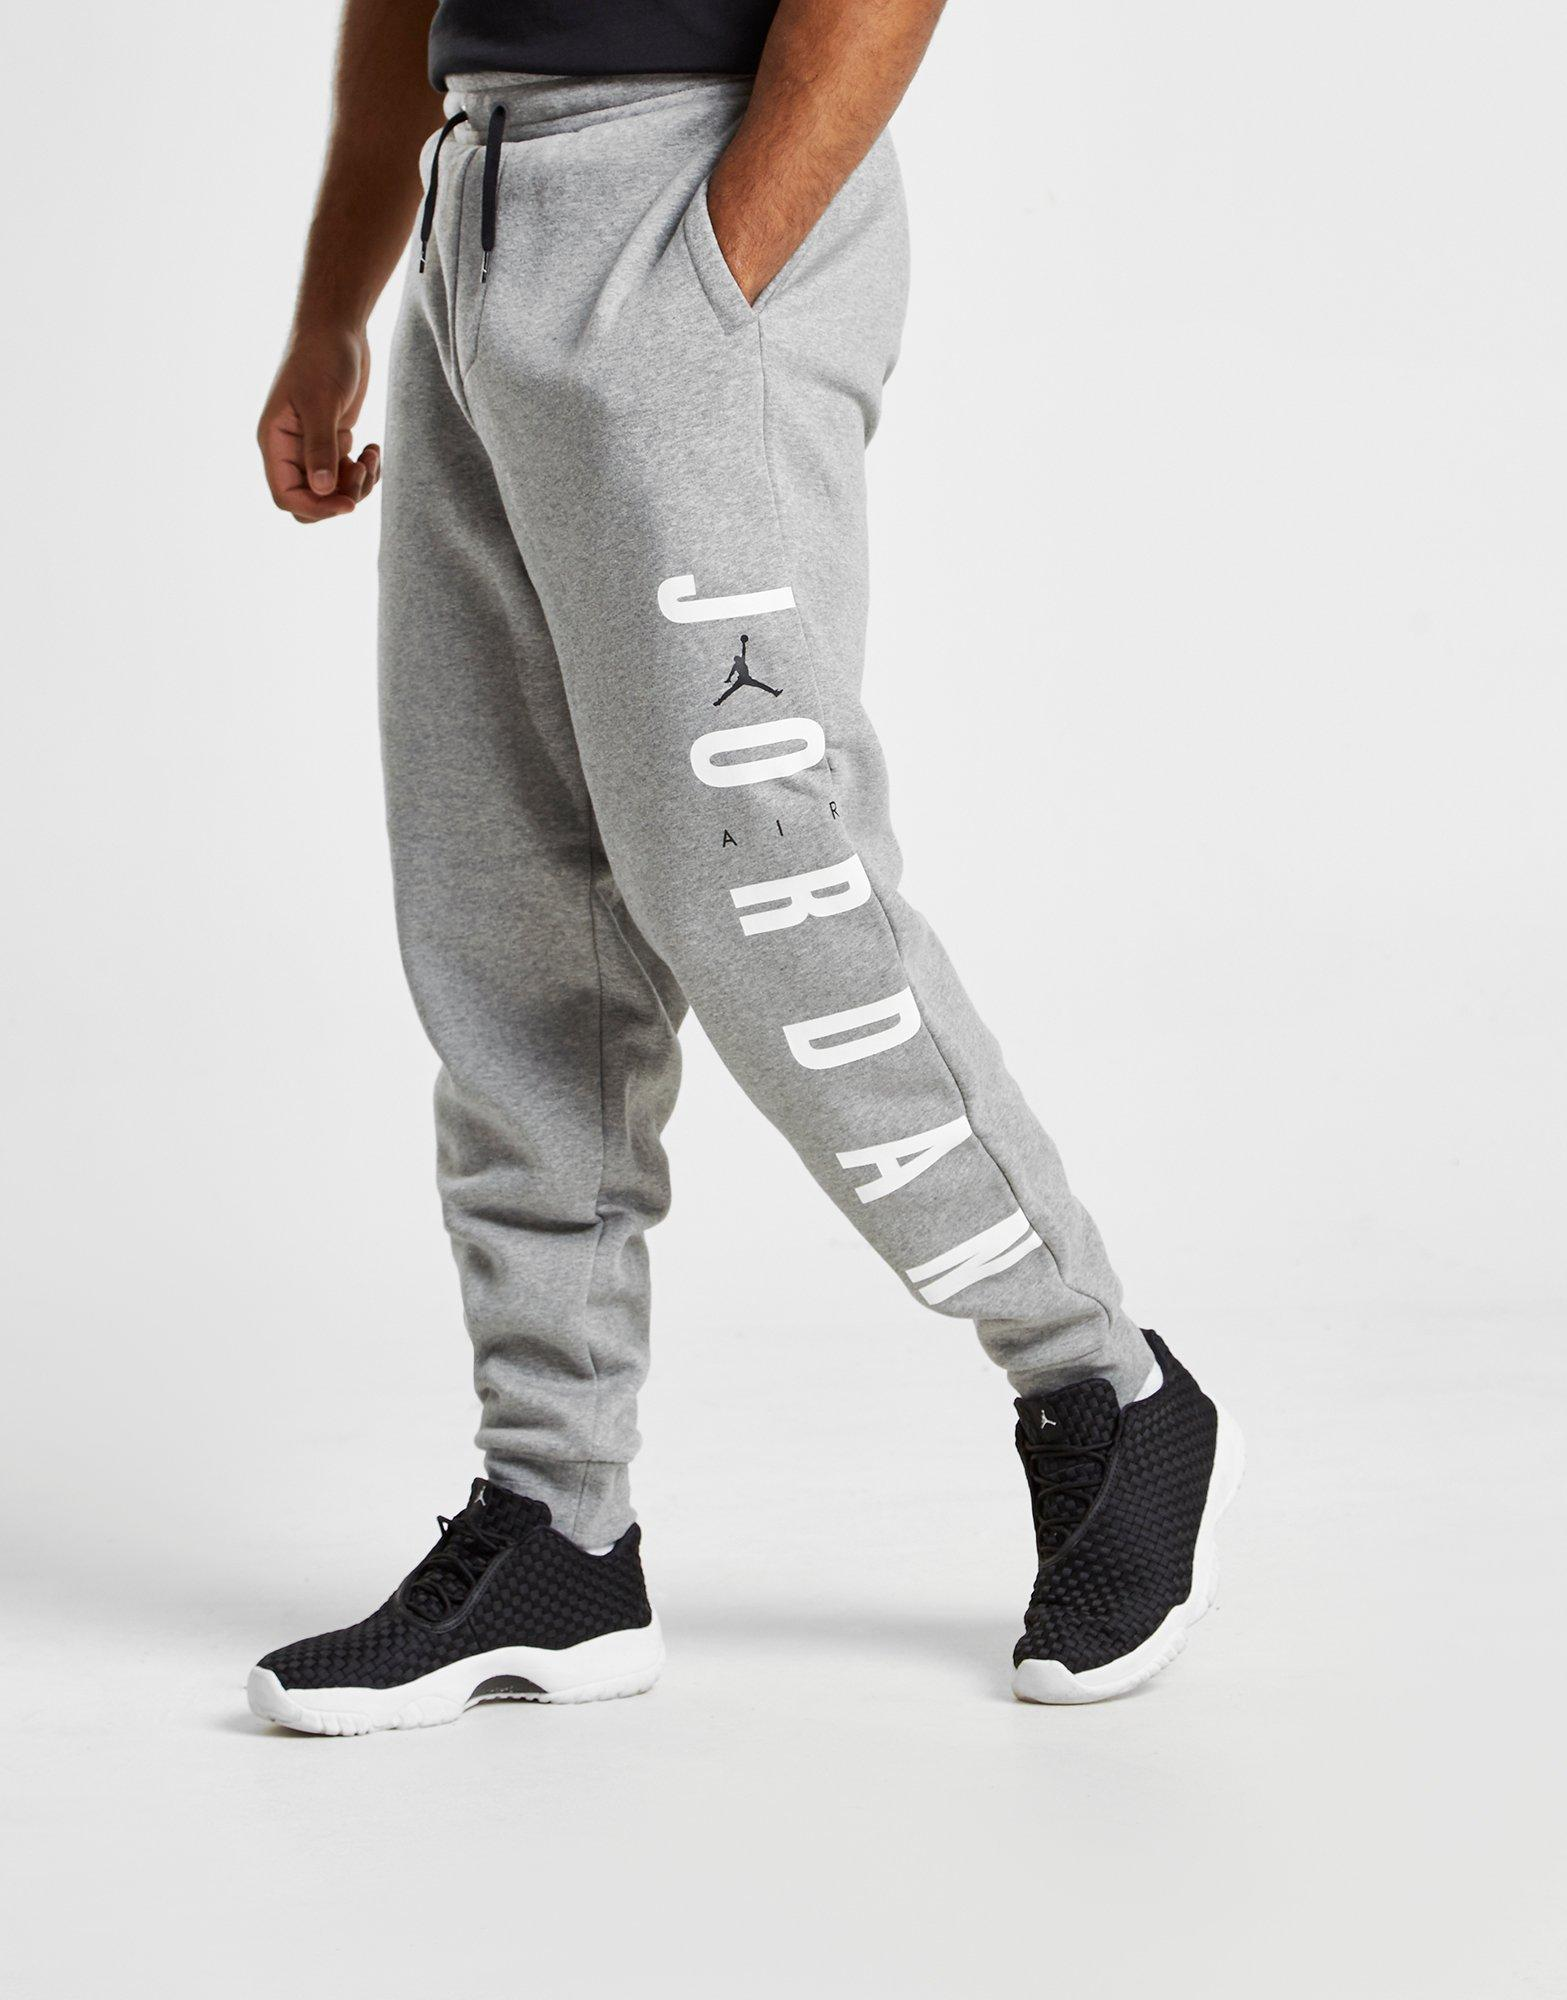 15f0a6ed1c33be Nike Jordan Sportswear Jumpman Air Men s Fleece Trousers in Gray for Men -  Lyst